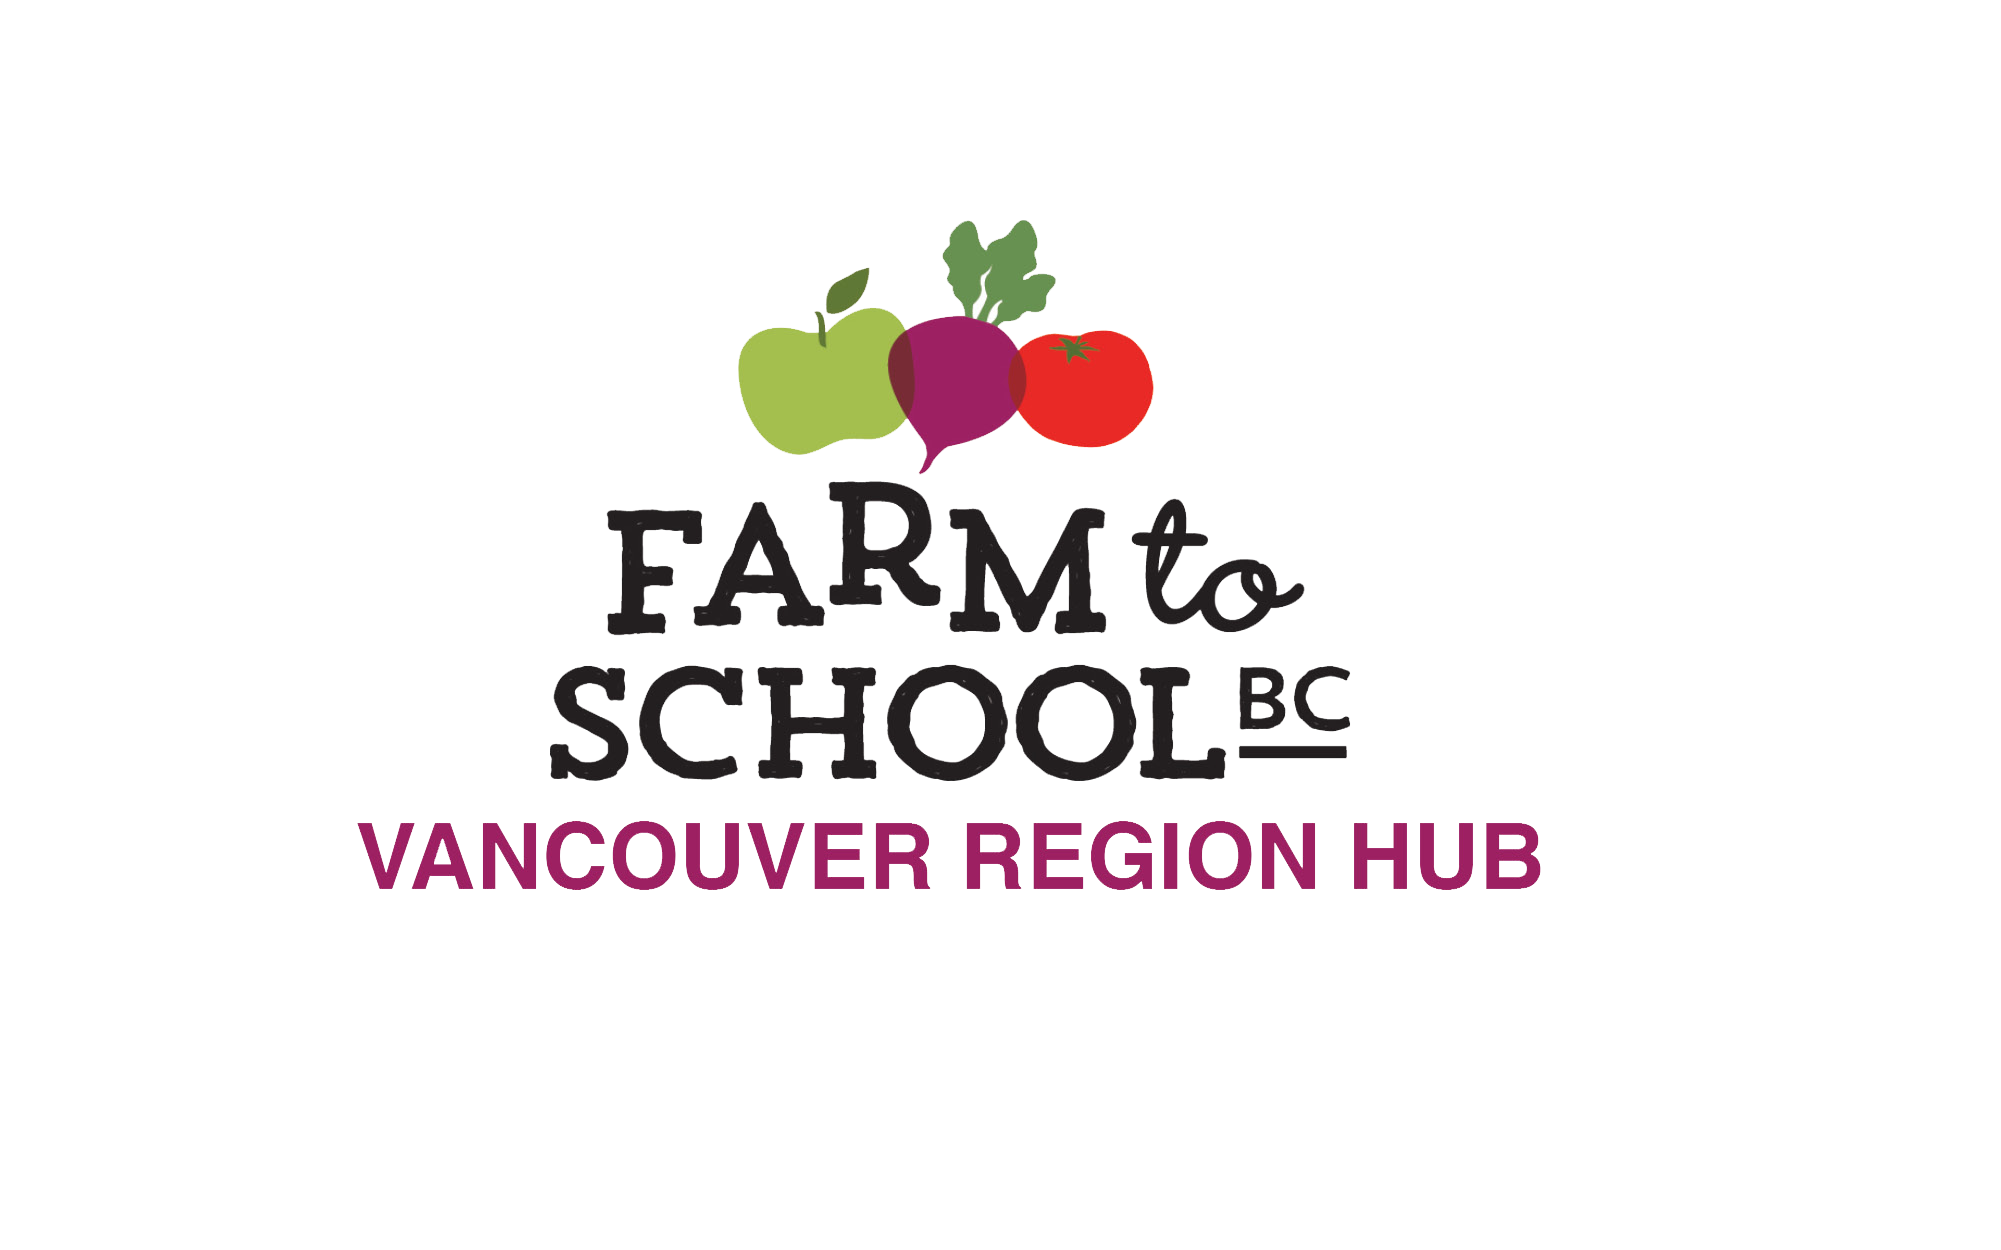 vancouver_logo.png